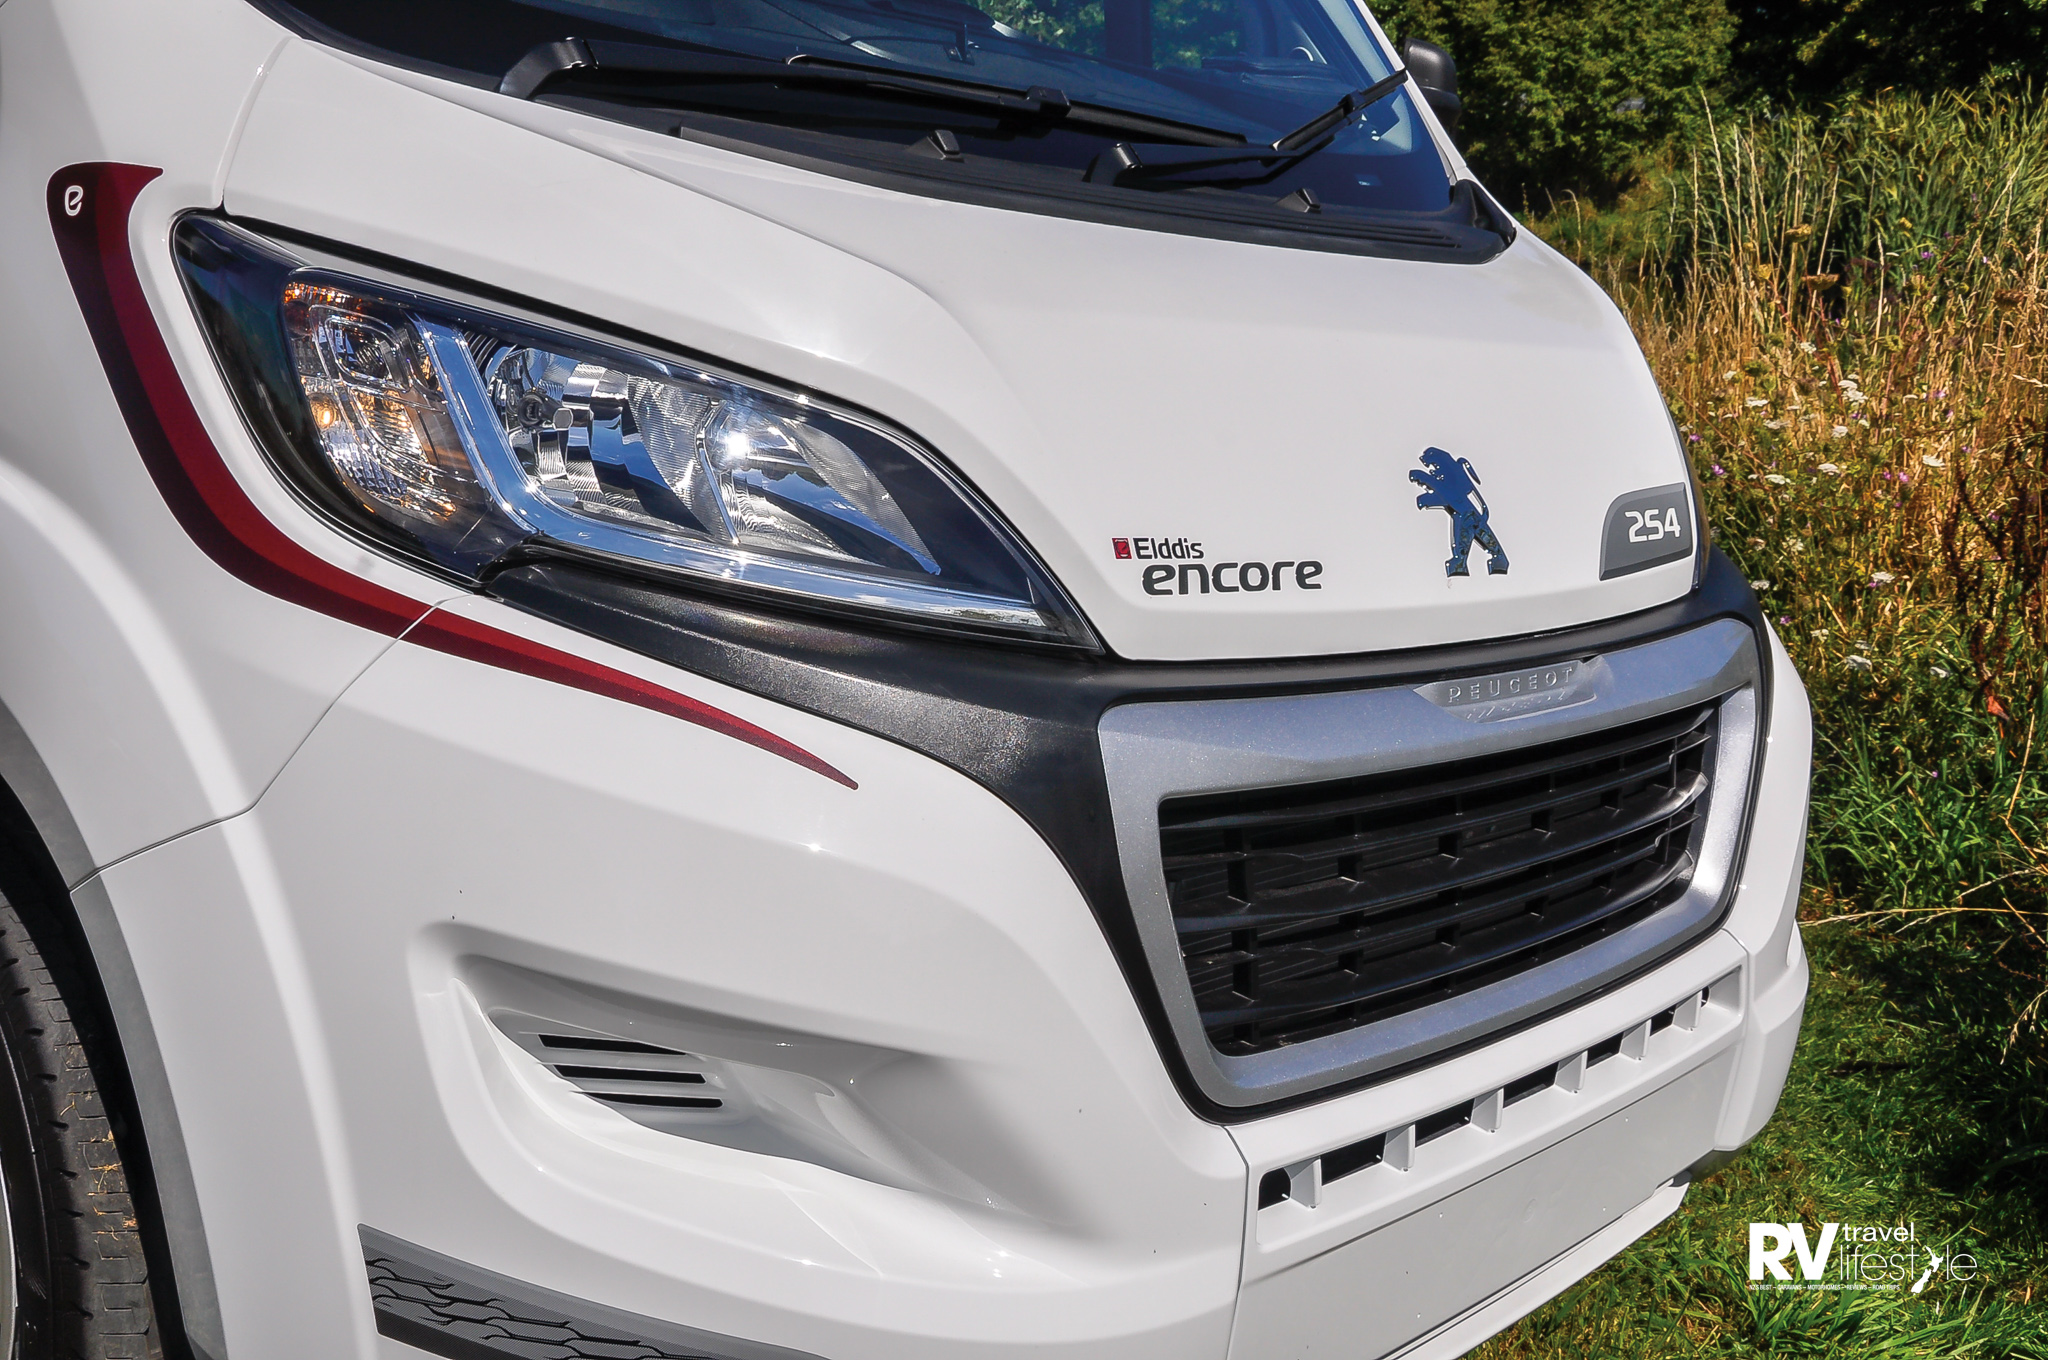 Peugeot cab chassis is the basis for all the Elddis motorhomes; this is the Encore 254 model we viewed